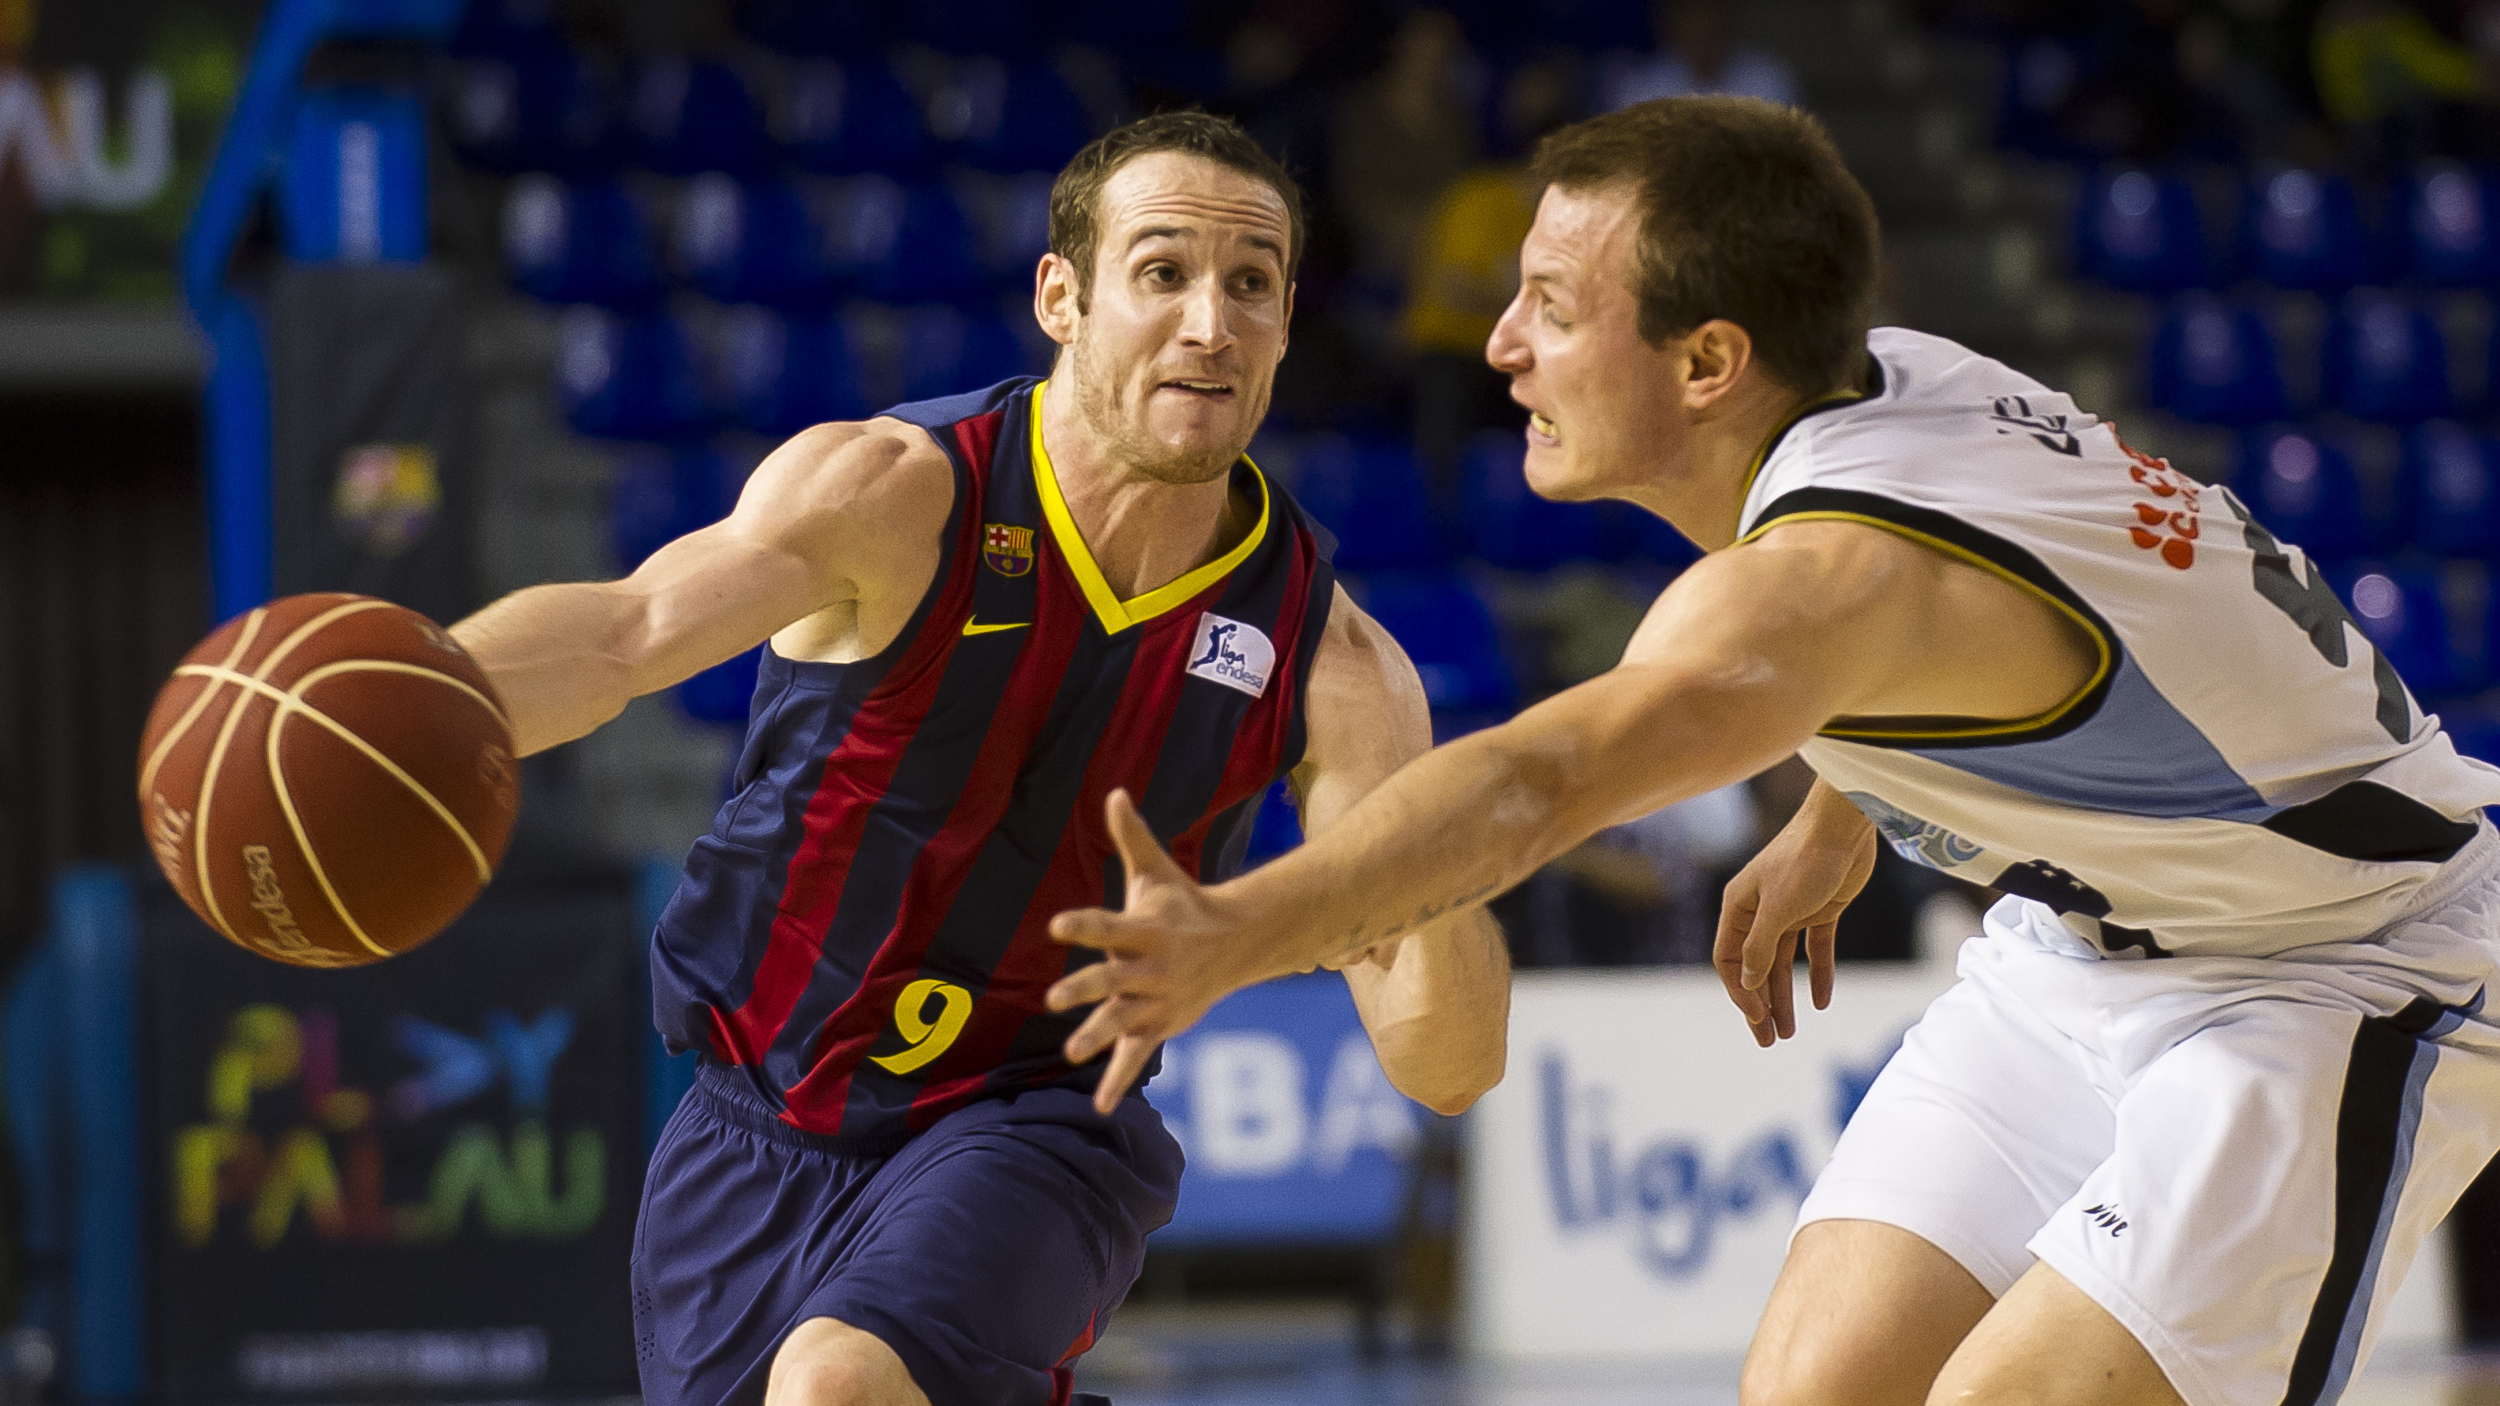 Huertas and his teammates will try to defeat Real Madrid for the 1st time this season.